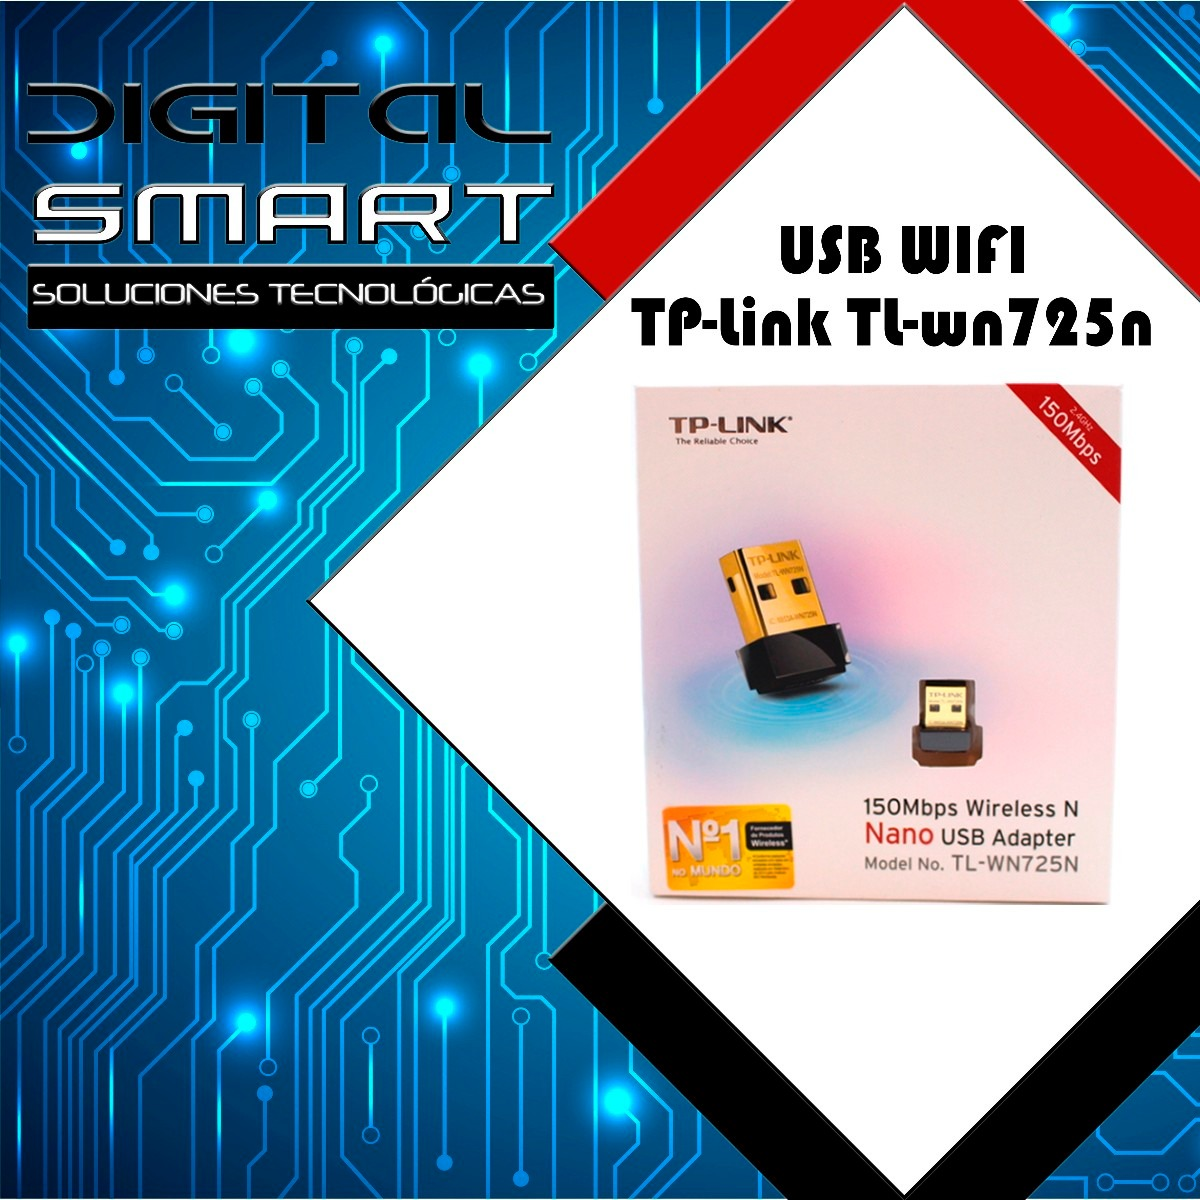 Nano Adaptador Usb Wireless N Tp Link Tl Wn725n Wifi 150mbps Us 8 Adapter 150 Mbps Cargando Zoom